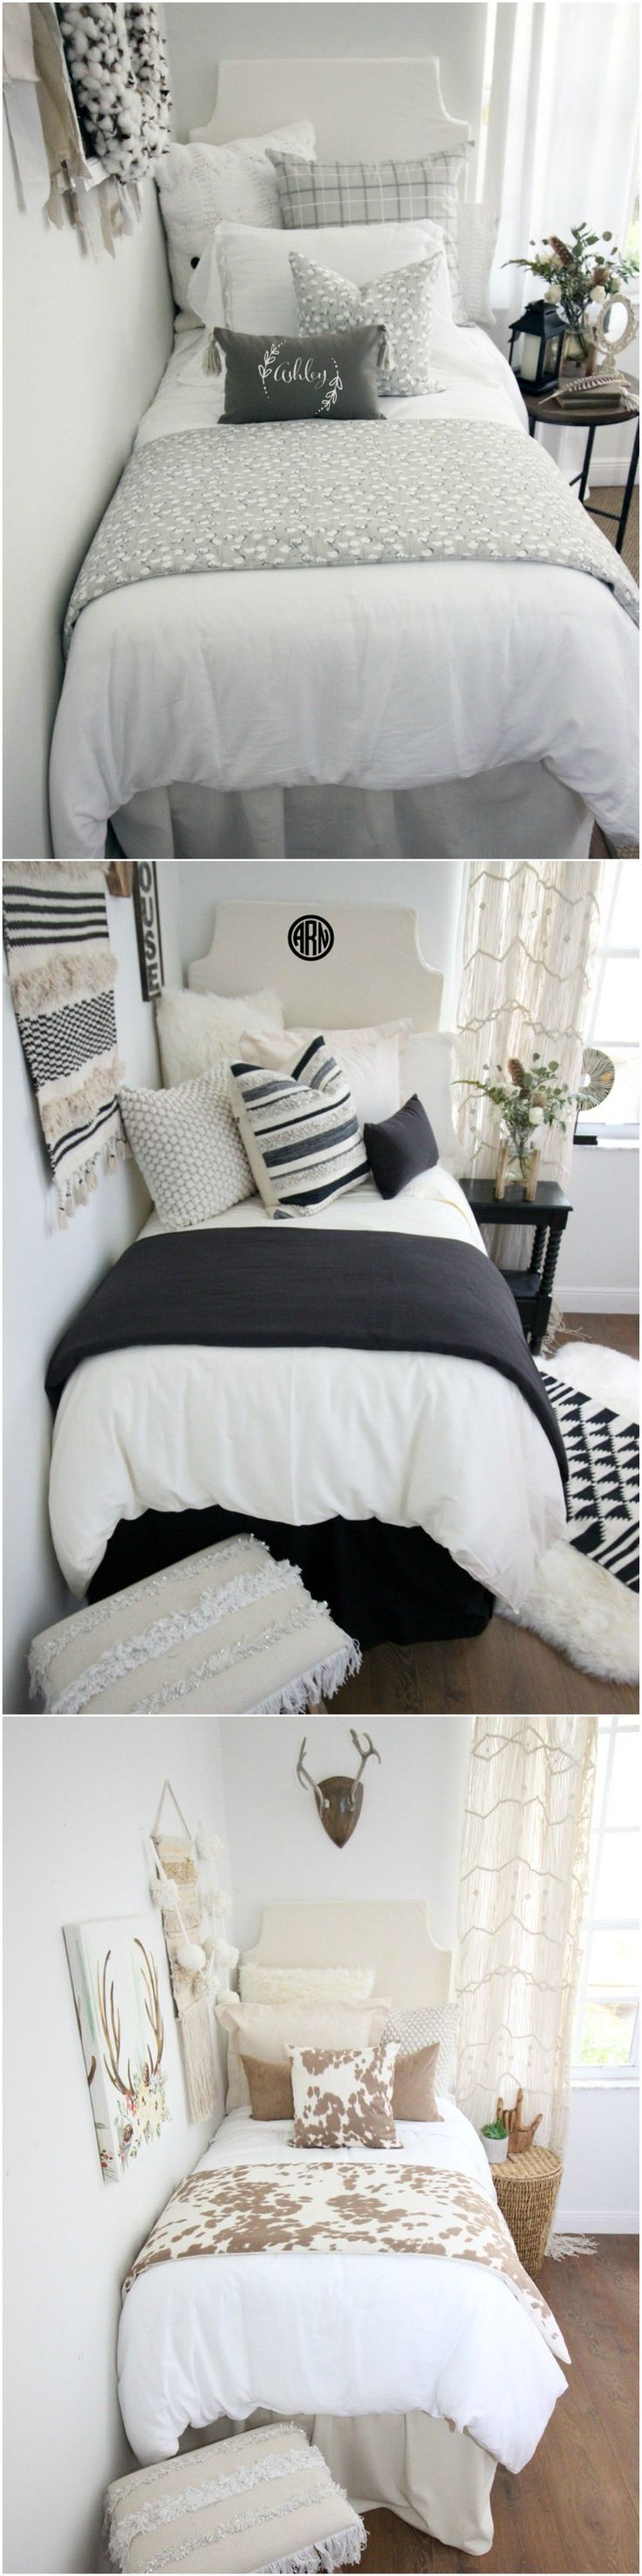 "Decorating a dorm room? Check out Decor 2 Ur Door for tons of college dorm room inspiration - from boho dorm room decor to preppy Lilly dorm rooms. Get the ""Fixer Upper"" farmhouse dorm room look with Magnolia Homes pillows and rugs or take a walk on the wild side with this blush and cheetah print dorm room. There are hundreds of dorm room bedding sets to fit your unique personality and style. We adore these custom-made designer headboards for dorm rooms, extended-length dorm room bed skirts"